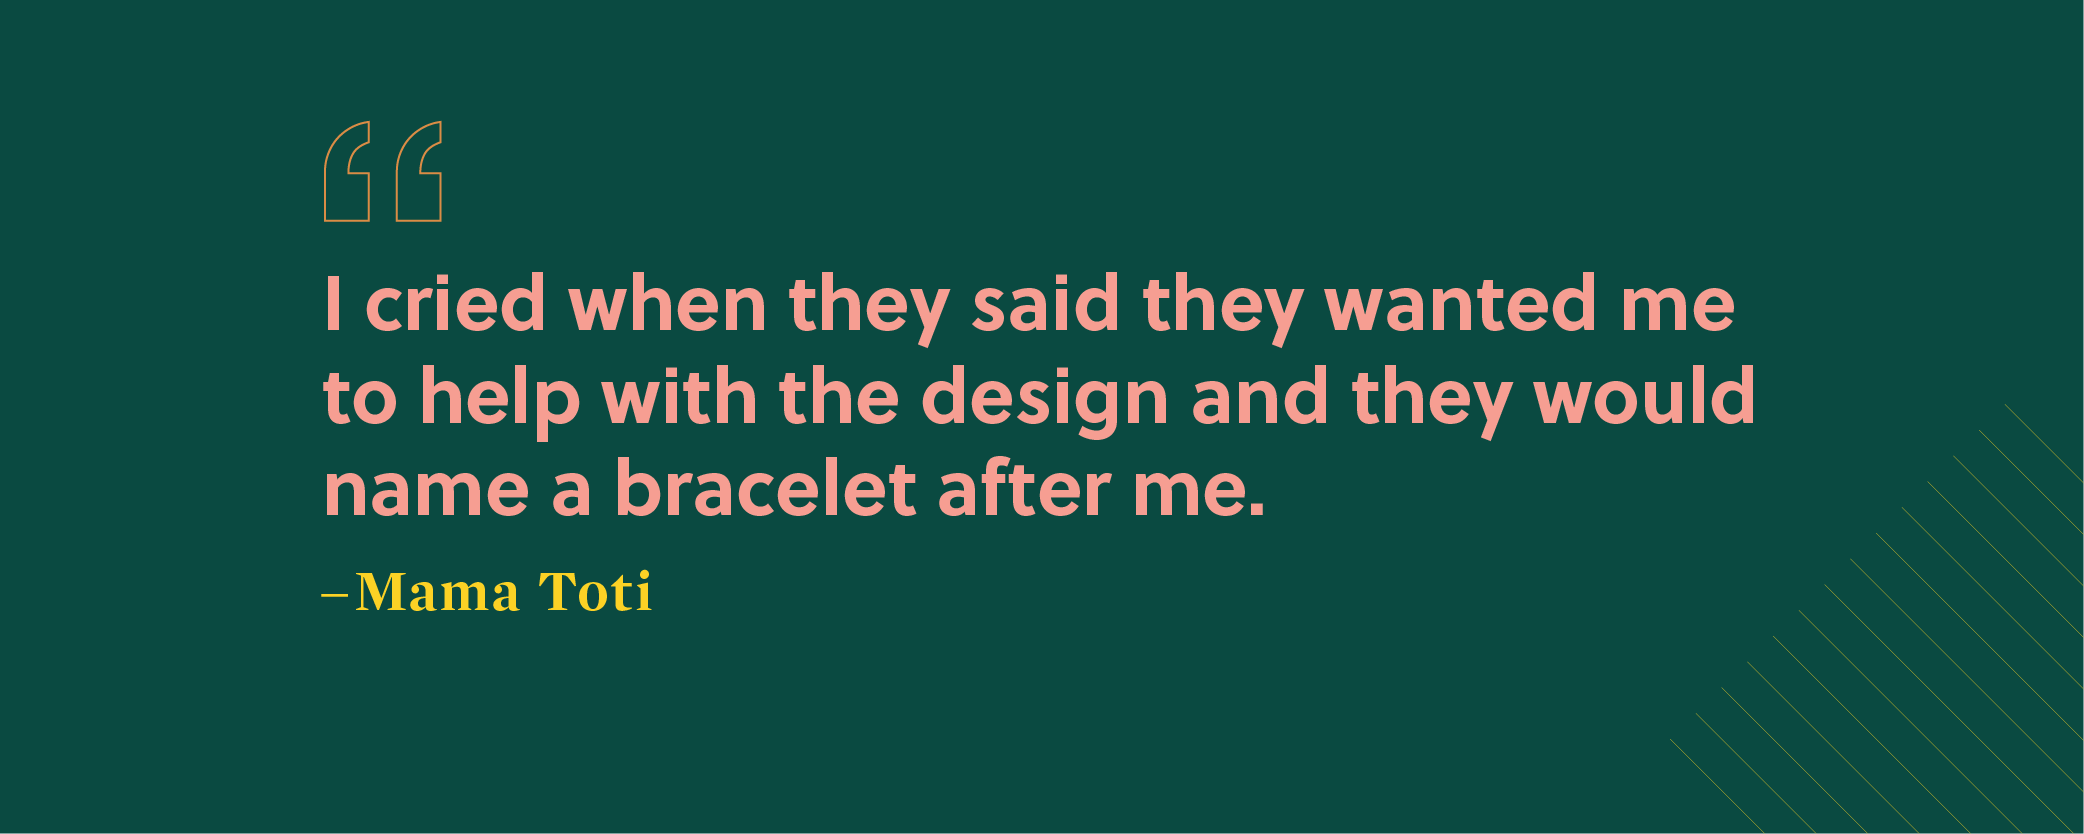 """Mama Toti: """"I cried when they said they wanted me to help with the design and they would name the bracelet after me."""""""